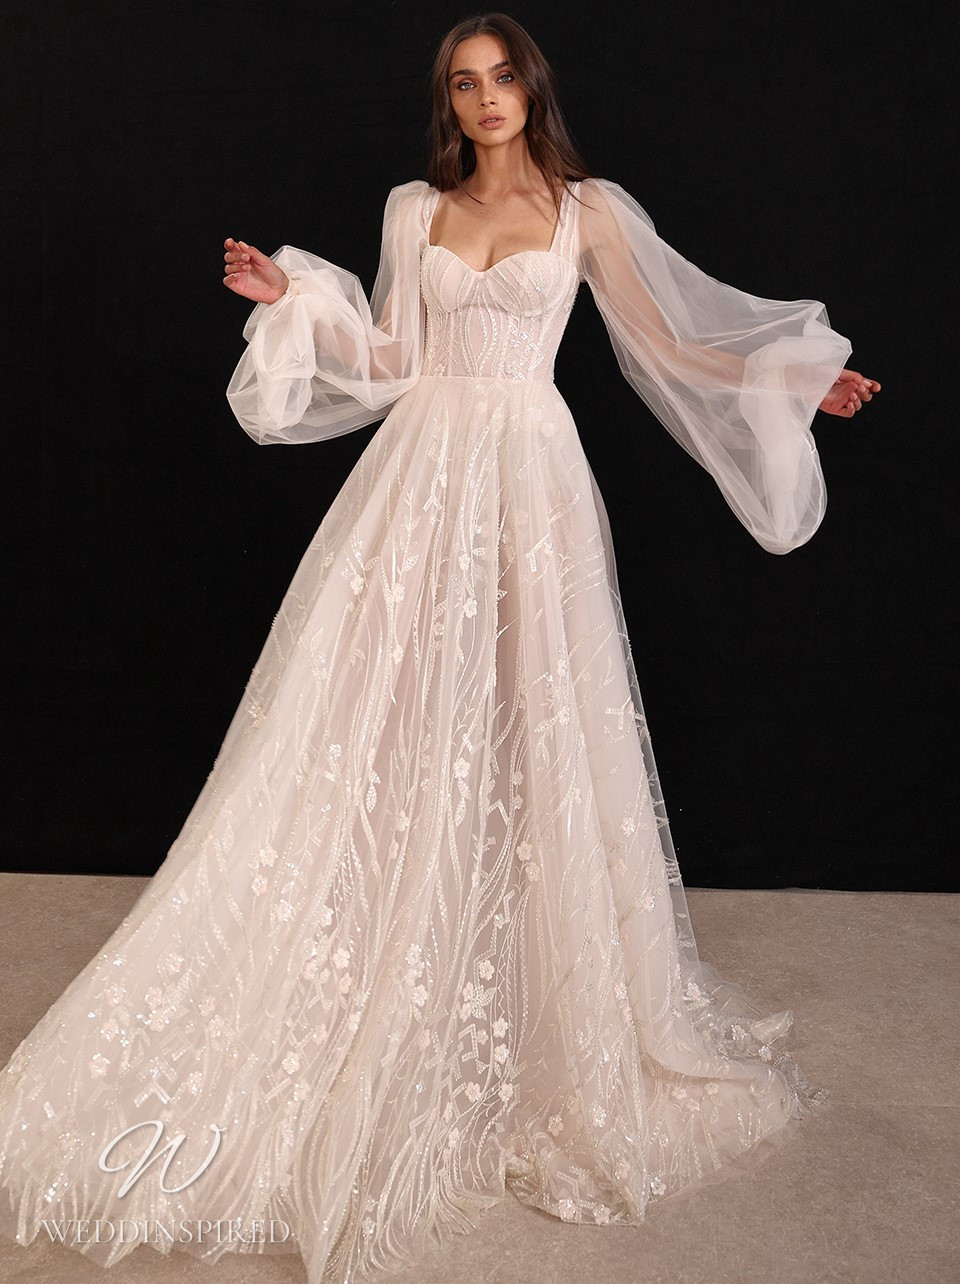 A Galia Lahav 2022 blush lace and tulle A-line wedding dress with long sleeves